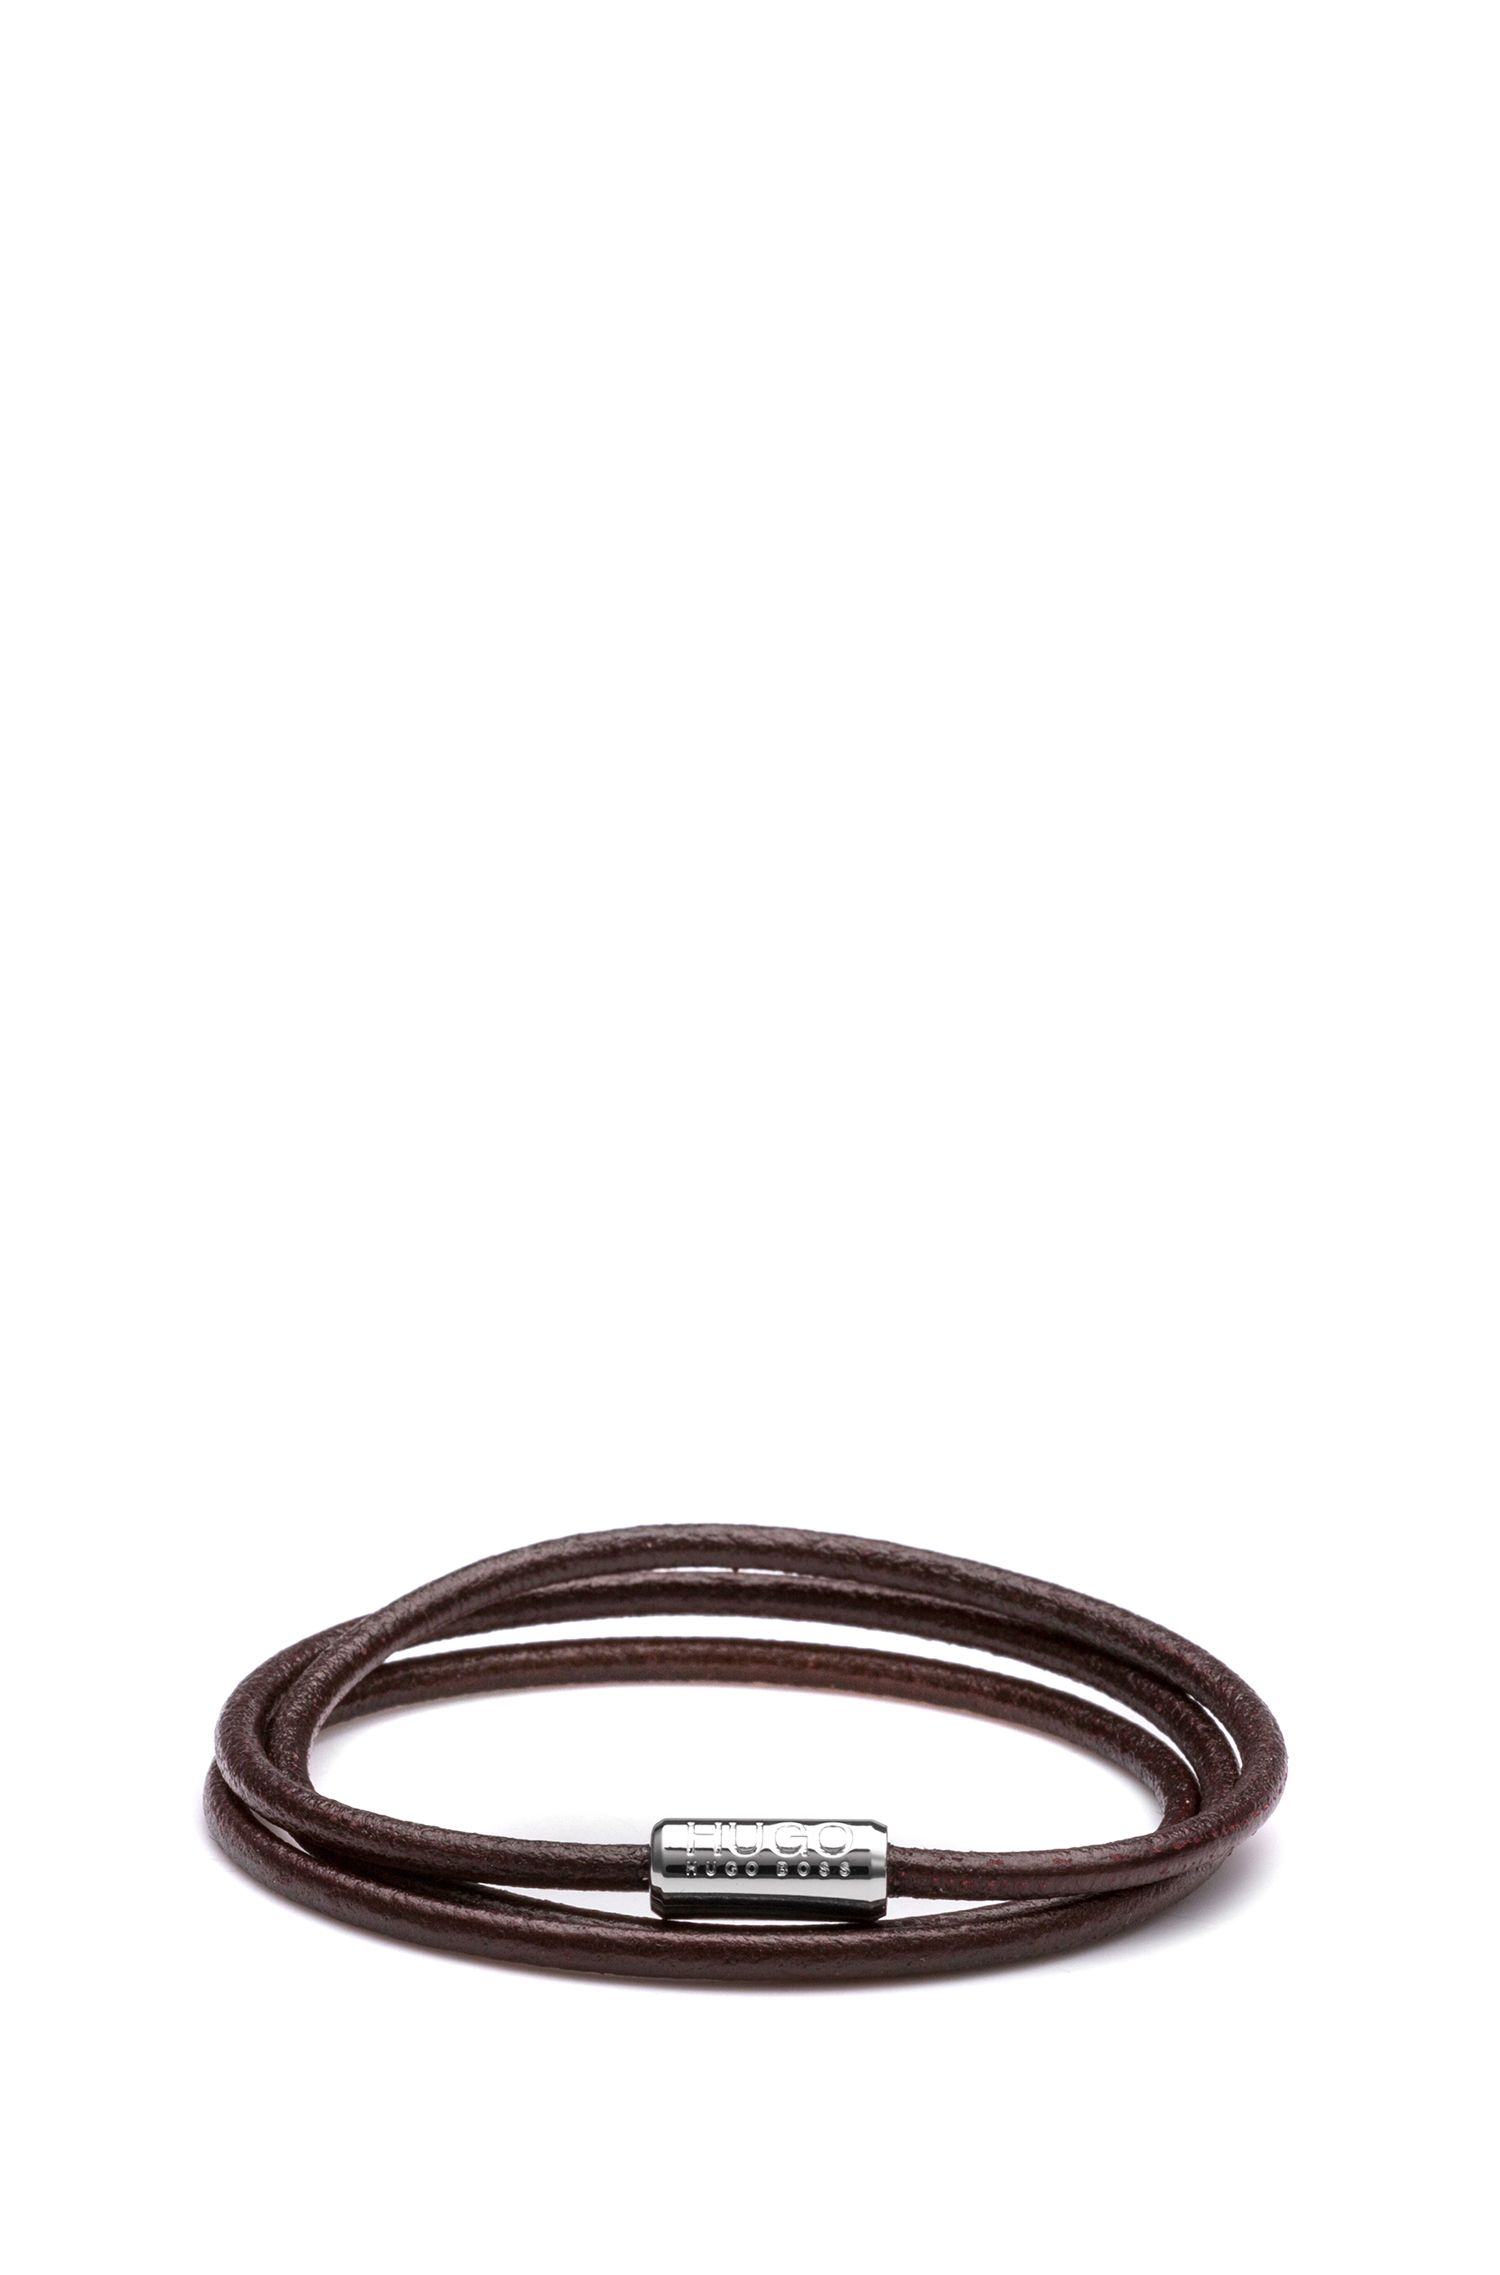 Italian-leather cord bracelet with magnetic closure, Dark Brown